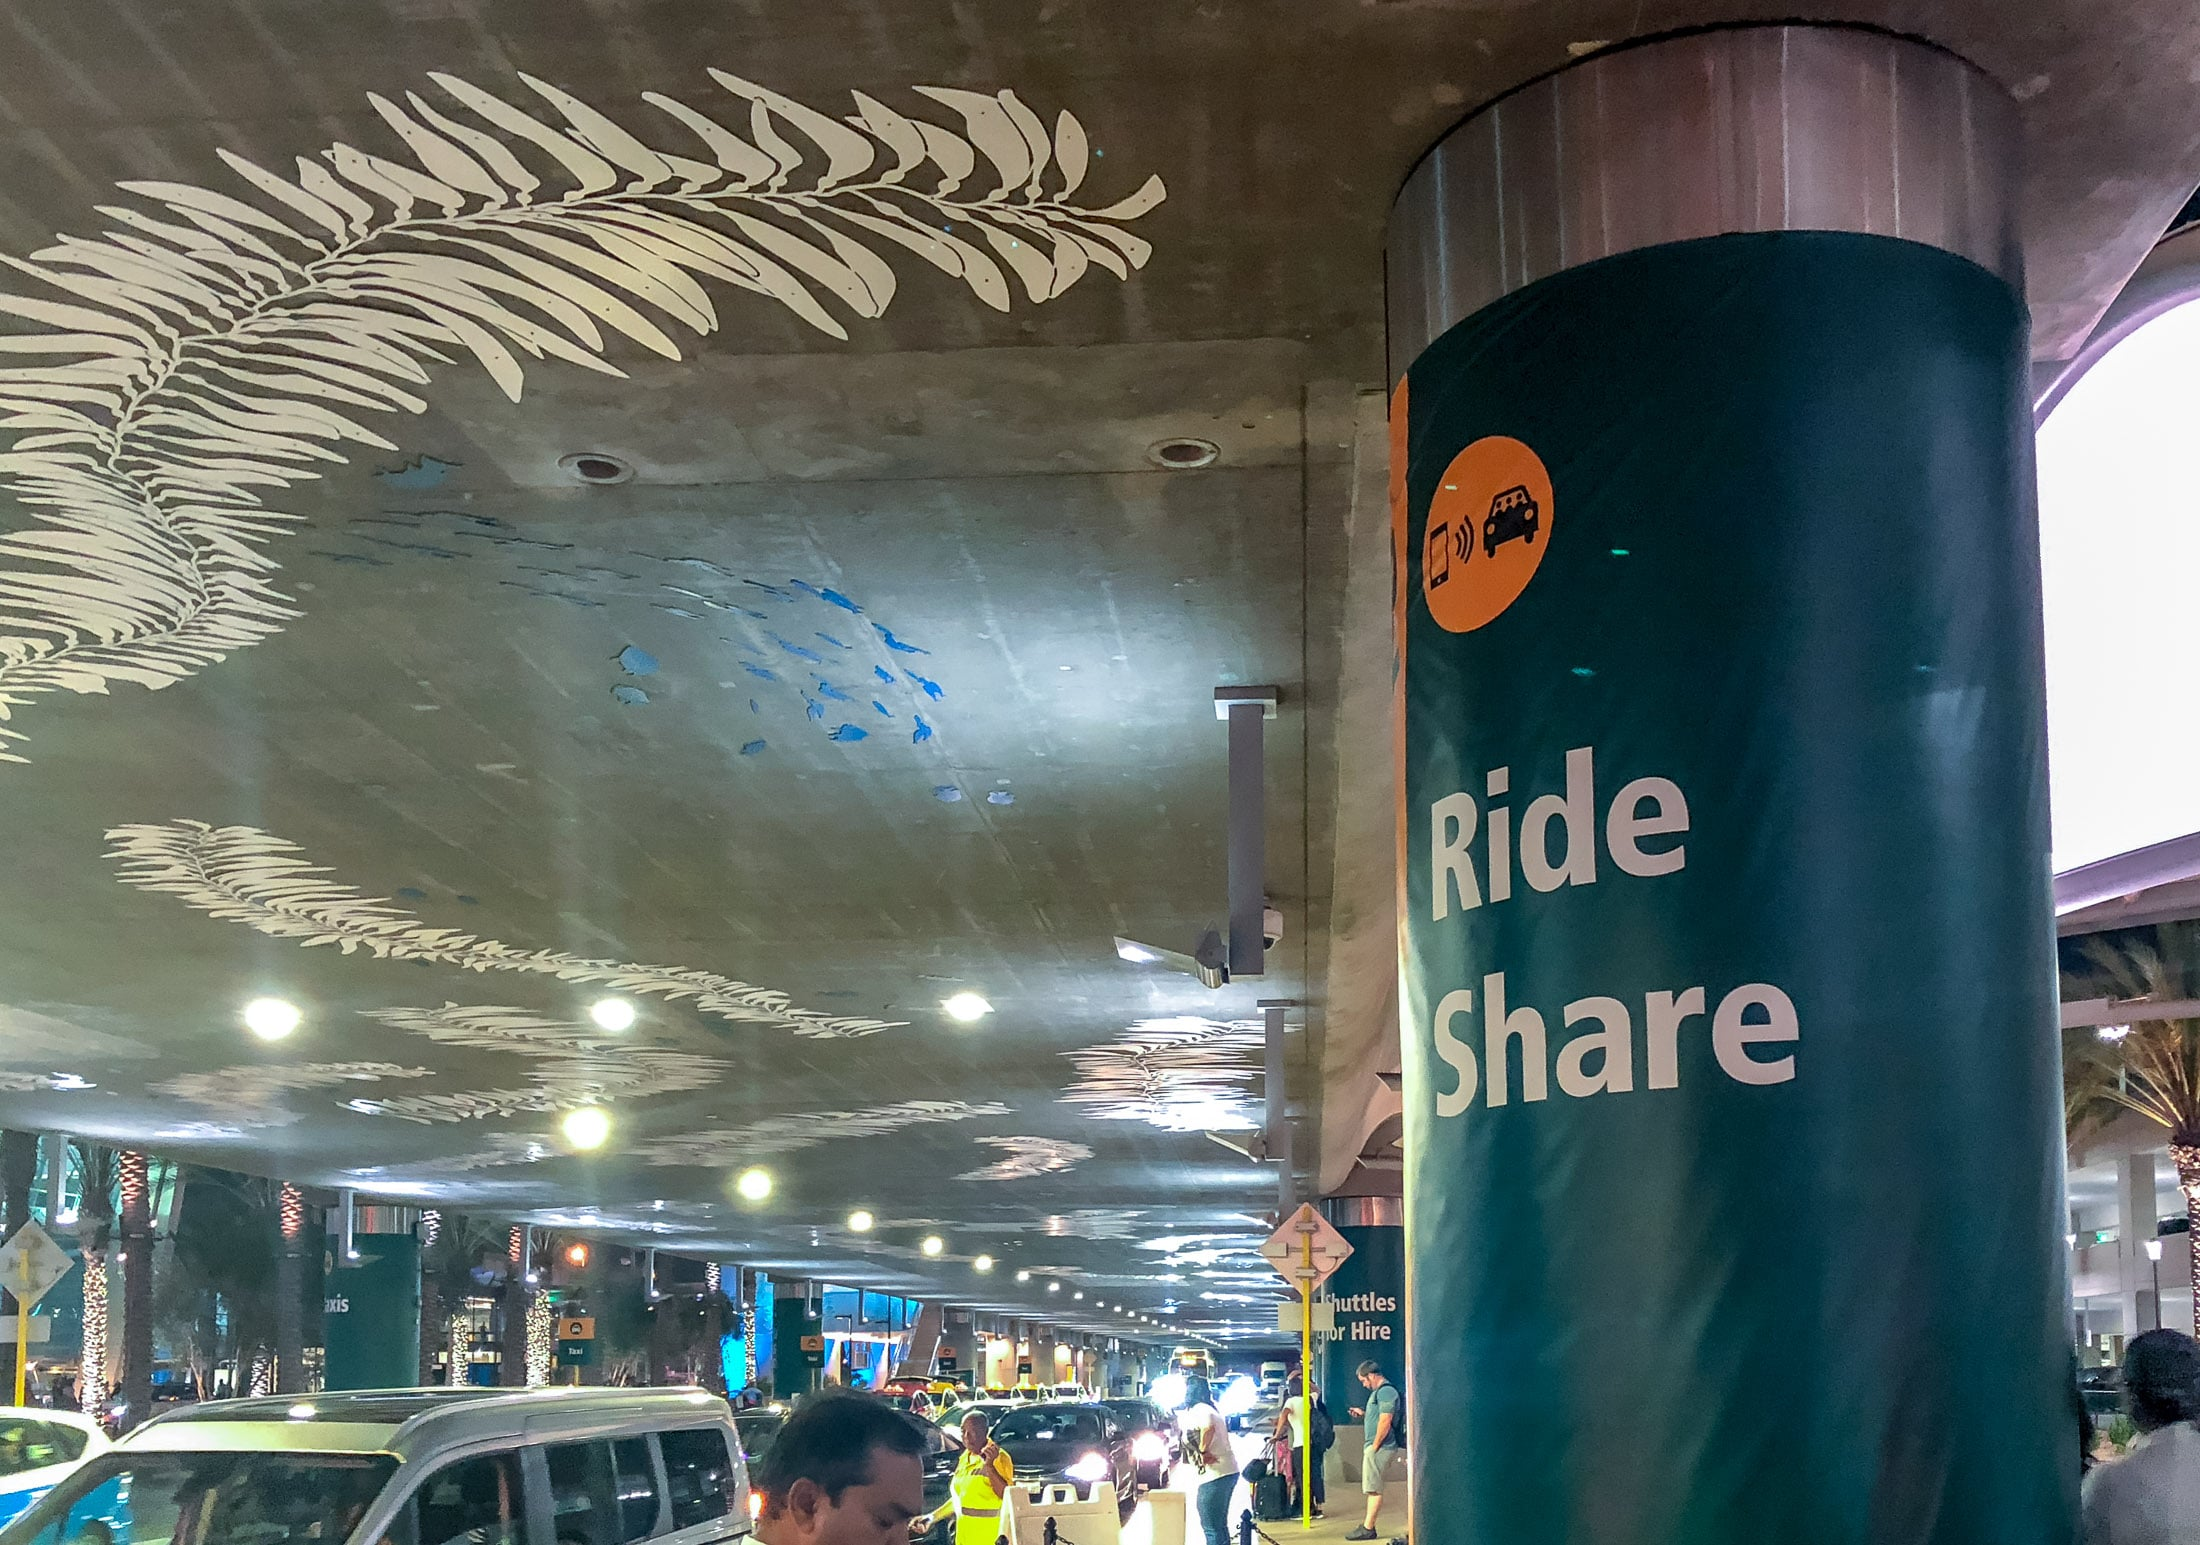 San Diego Airport Transportation: Ride Share (Uber, Lyft, etc.)